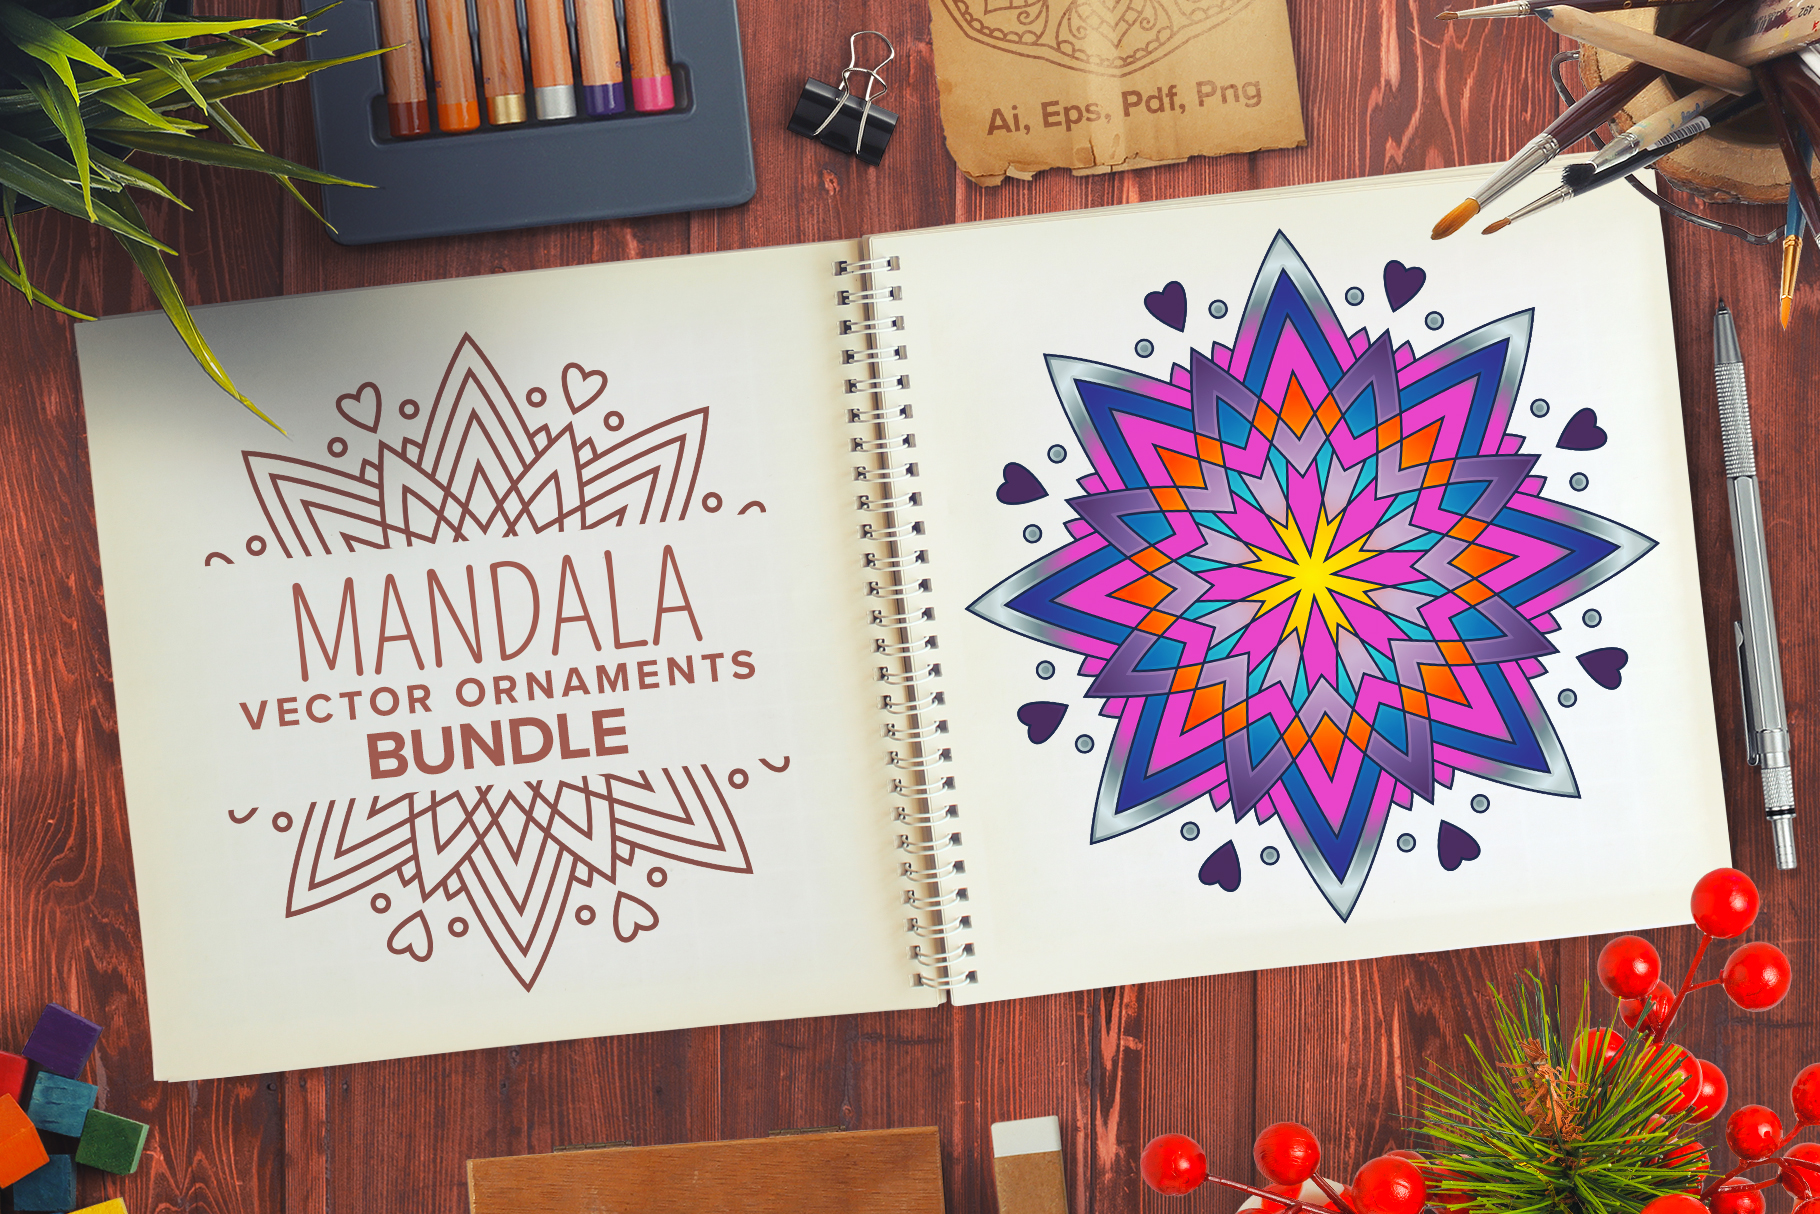 Mandala Vector Ornaments Bundle example image 1